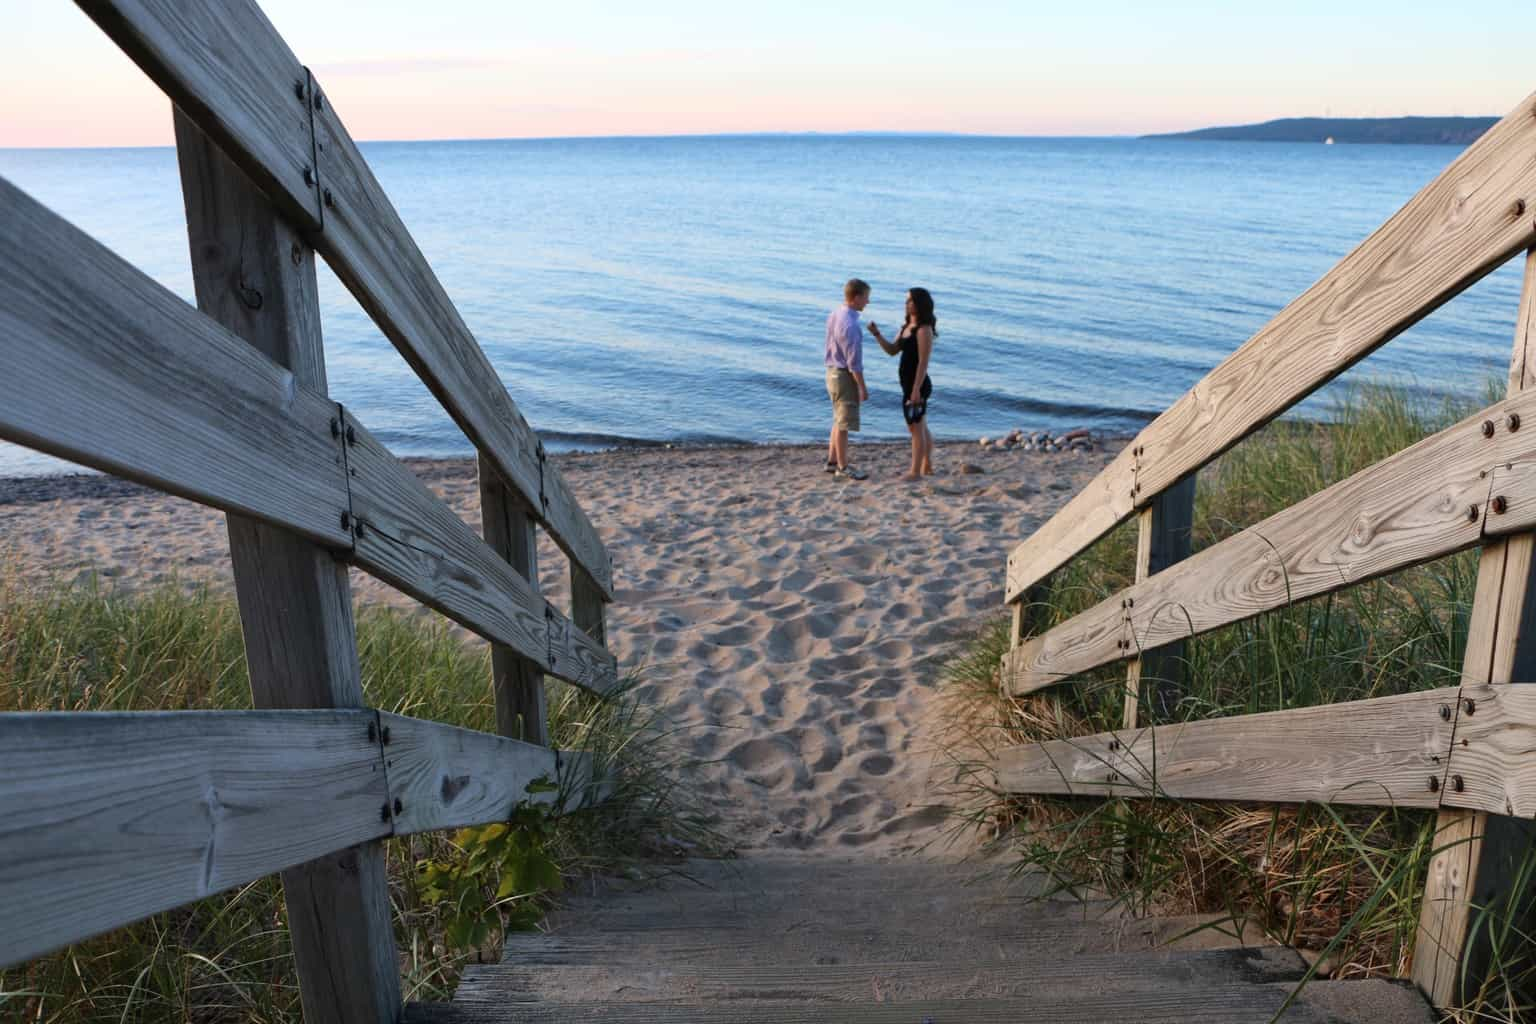 Beach by Point Iroquois Lighthouse - #MittenTrip - Sault Ste Marie - The Awesome Mitten